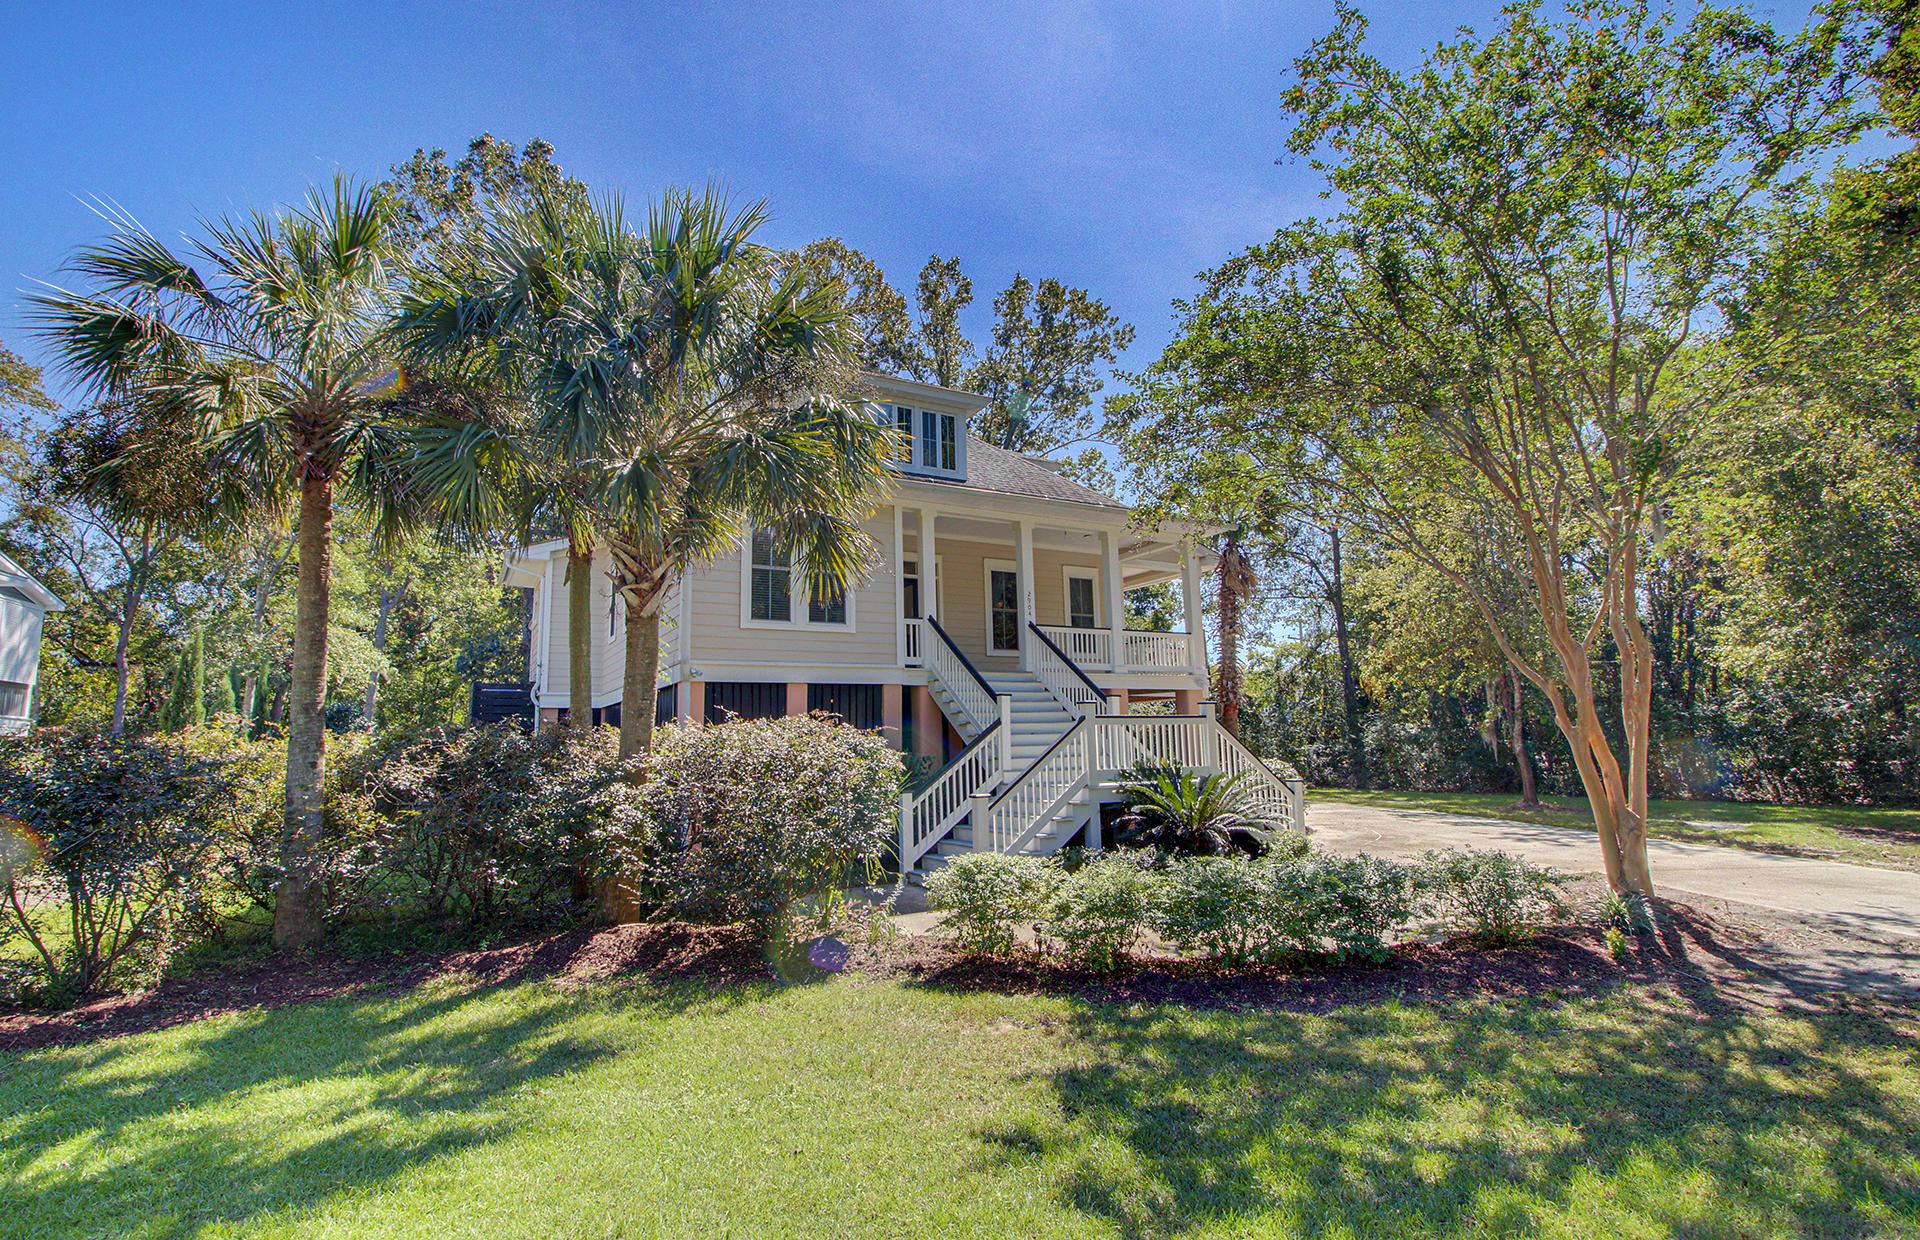 Yough Hall Homes For Sale - 2904 Old Tavern, Mount Pleasant, SC - 30